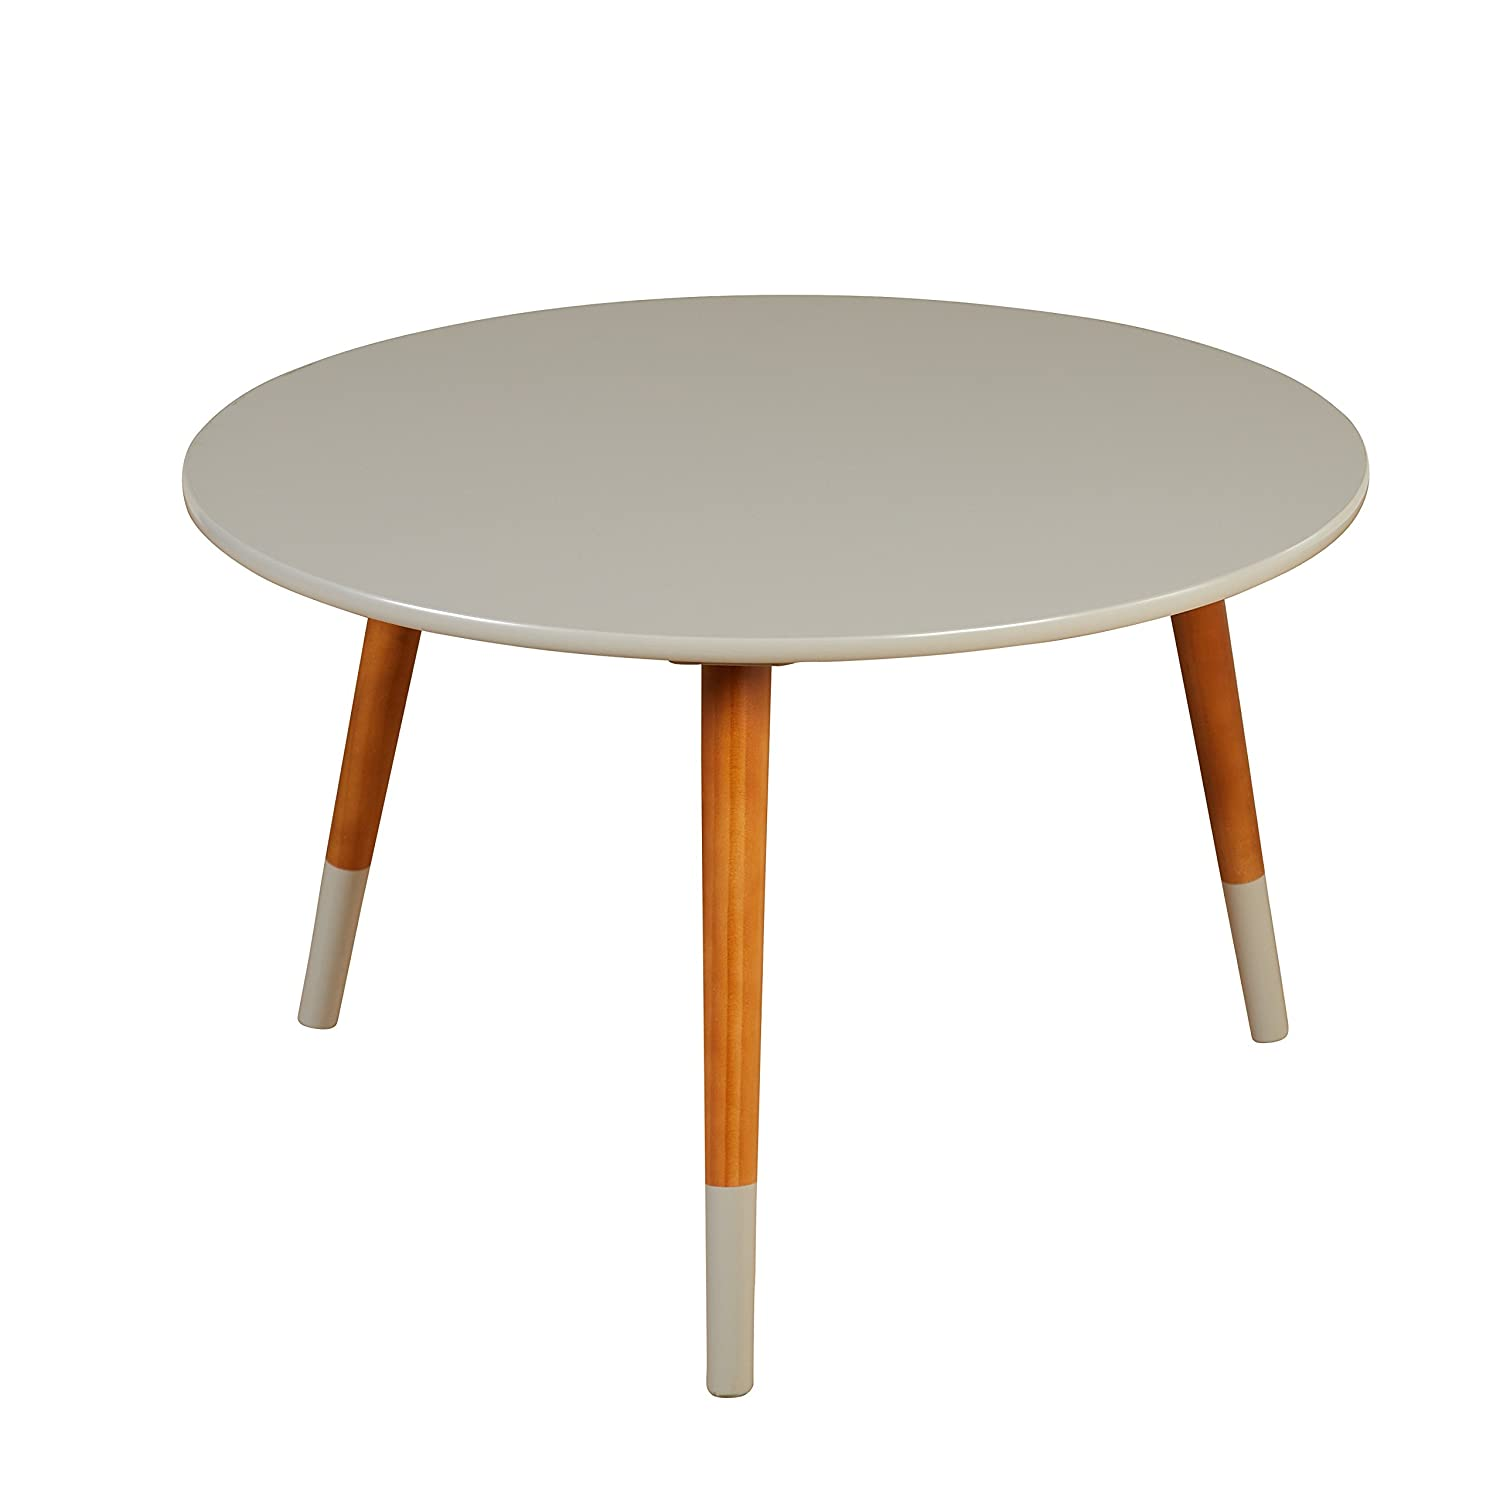 Magnificent Target Marketing Systems Livia Collection Ultra Modern Round Coffee Table With Splayed Leg Finish Gray Wood Inzonedesignstudio Interior Chair Design Inzonedesignstudiocom